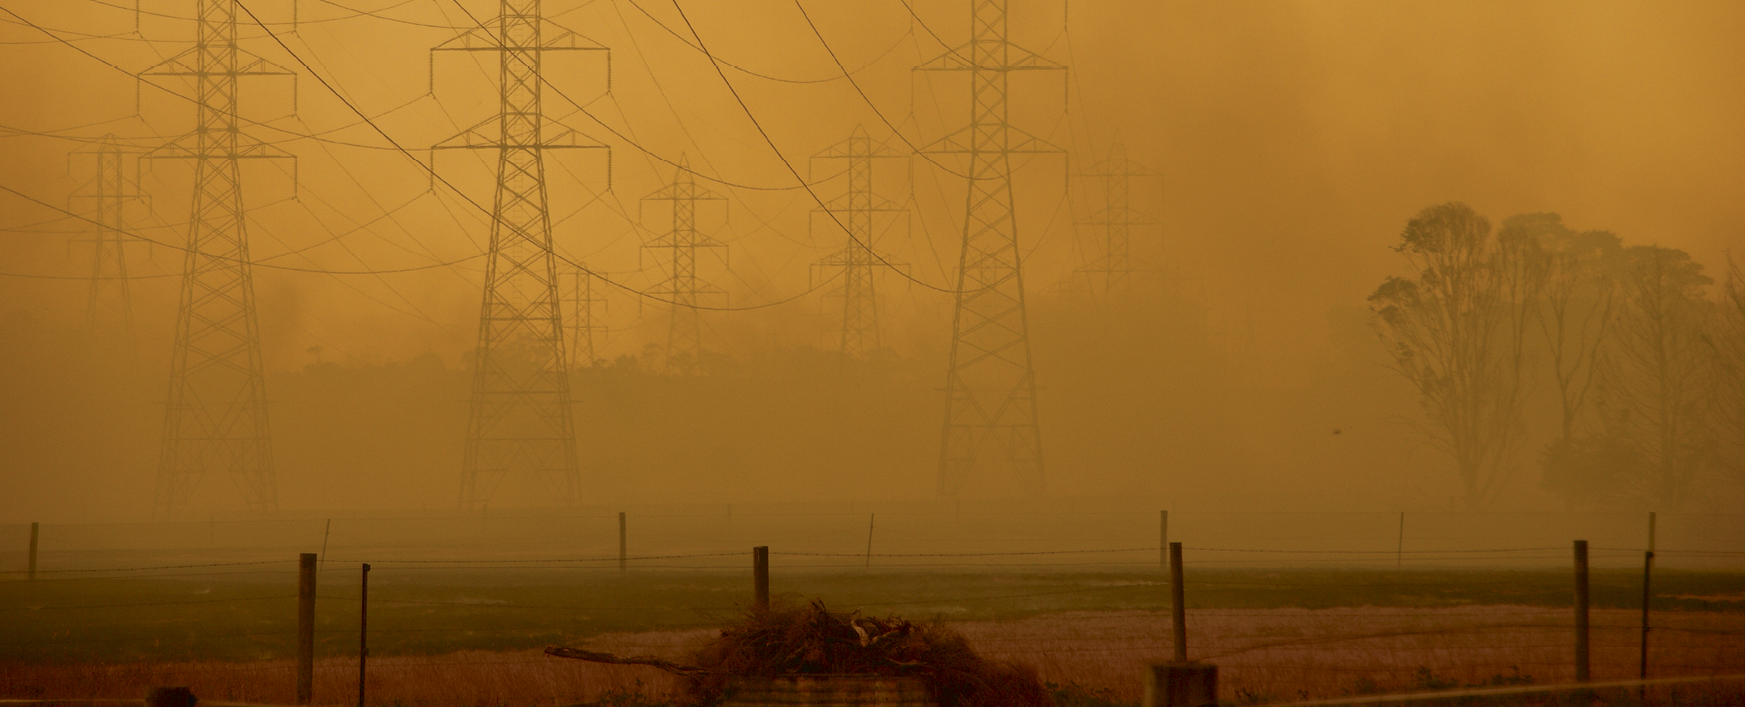 Electricity pylons in a rural setting shrouded in brown hazy bushfire smoke.